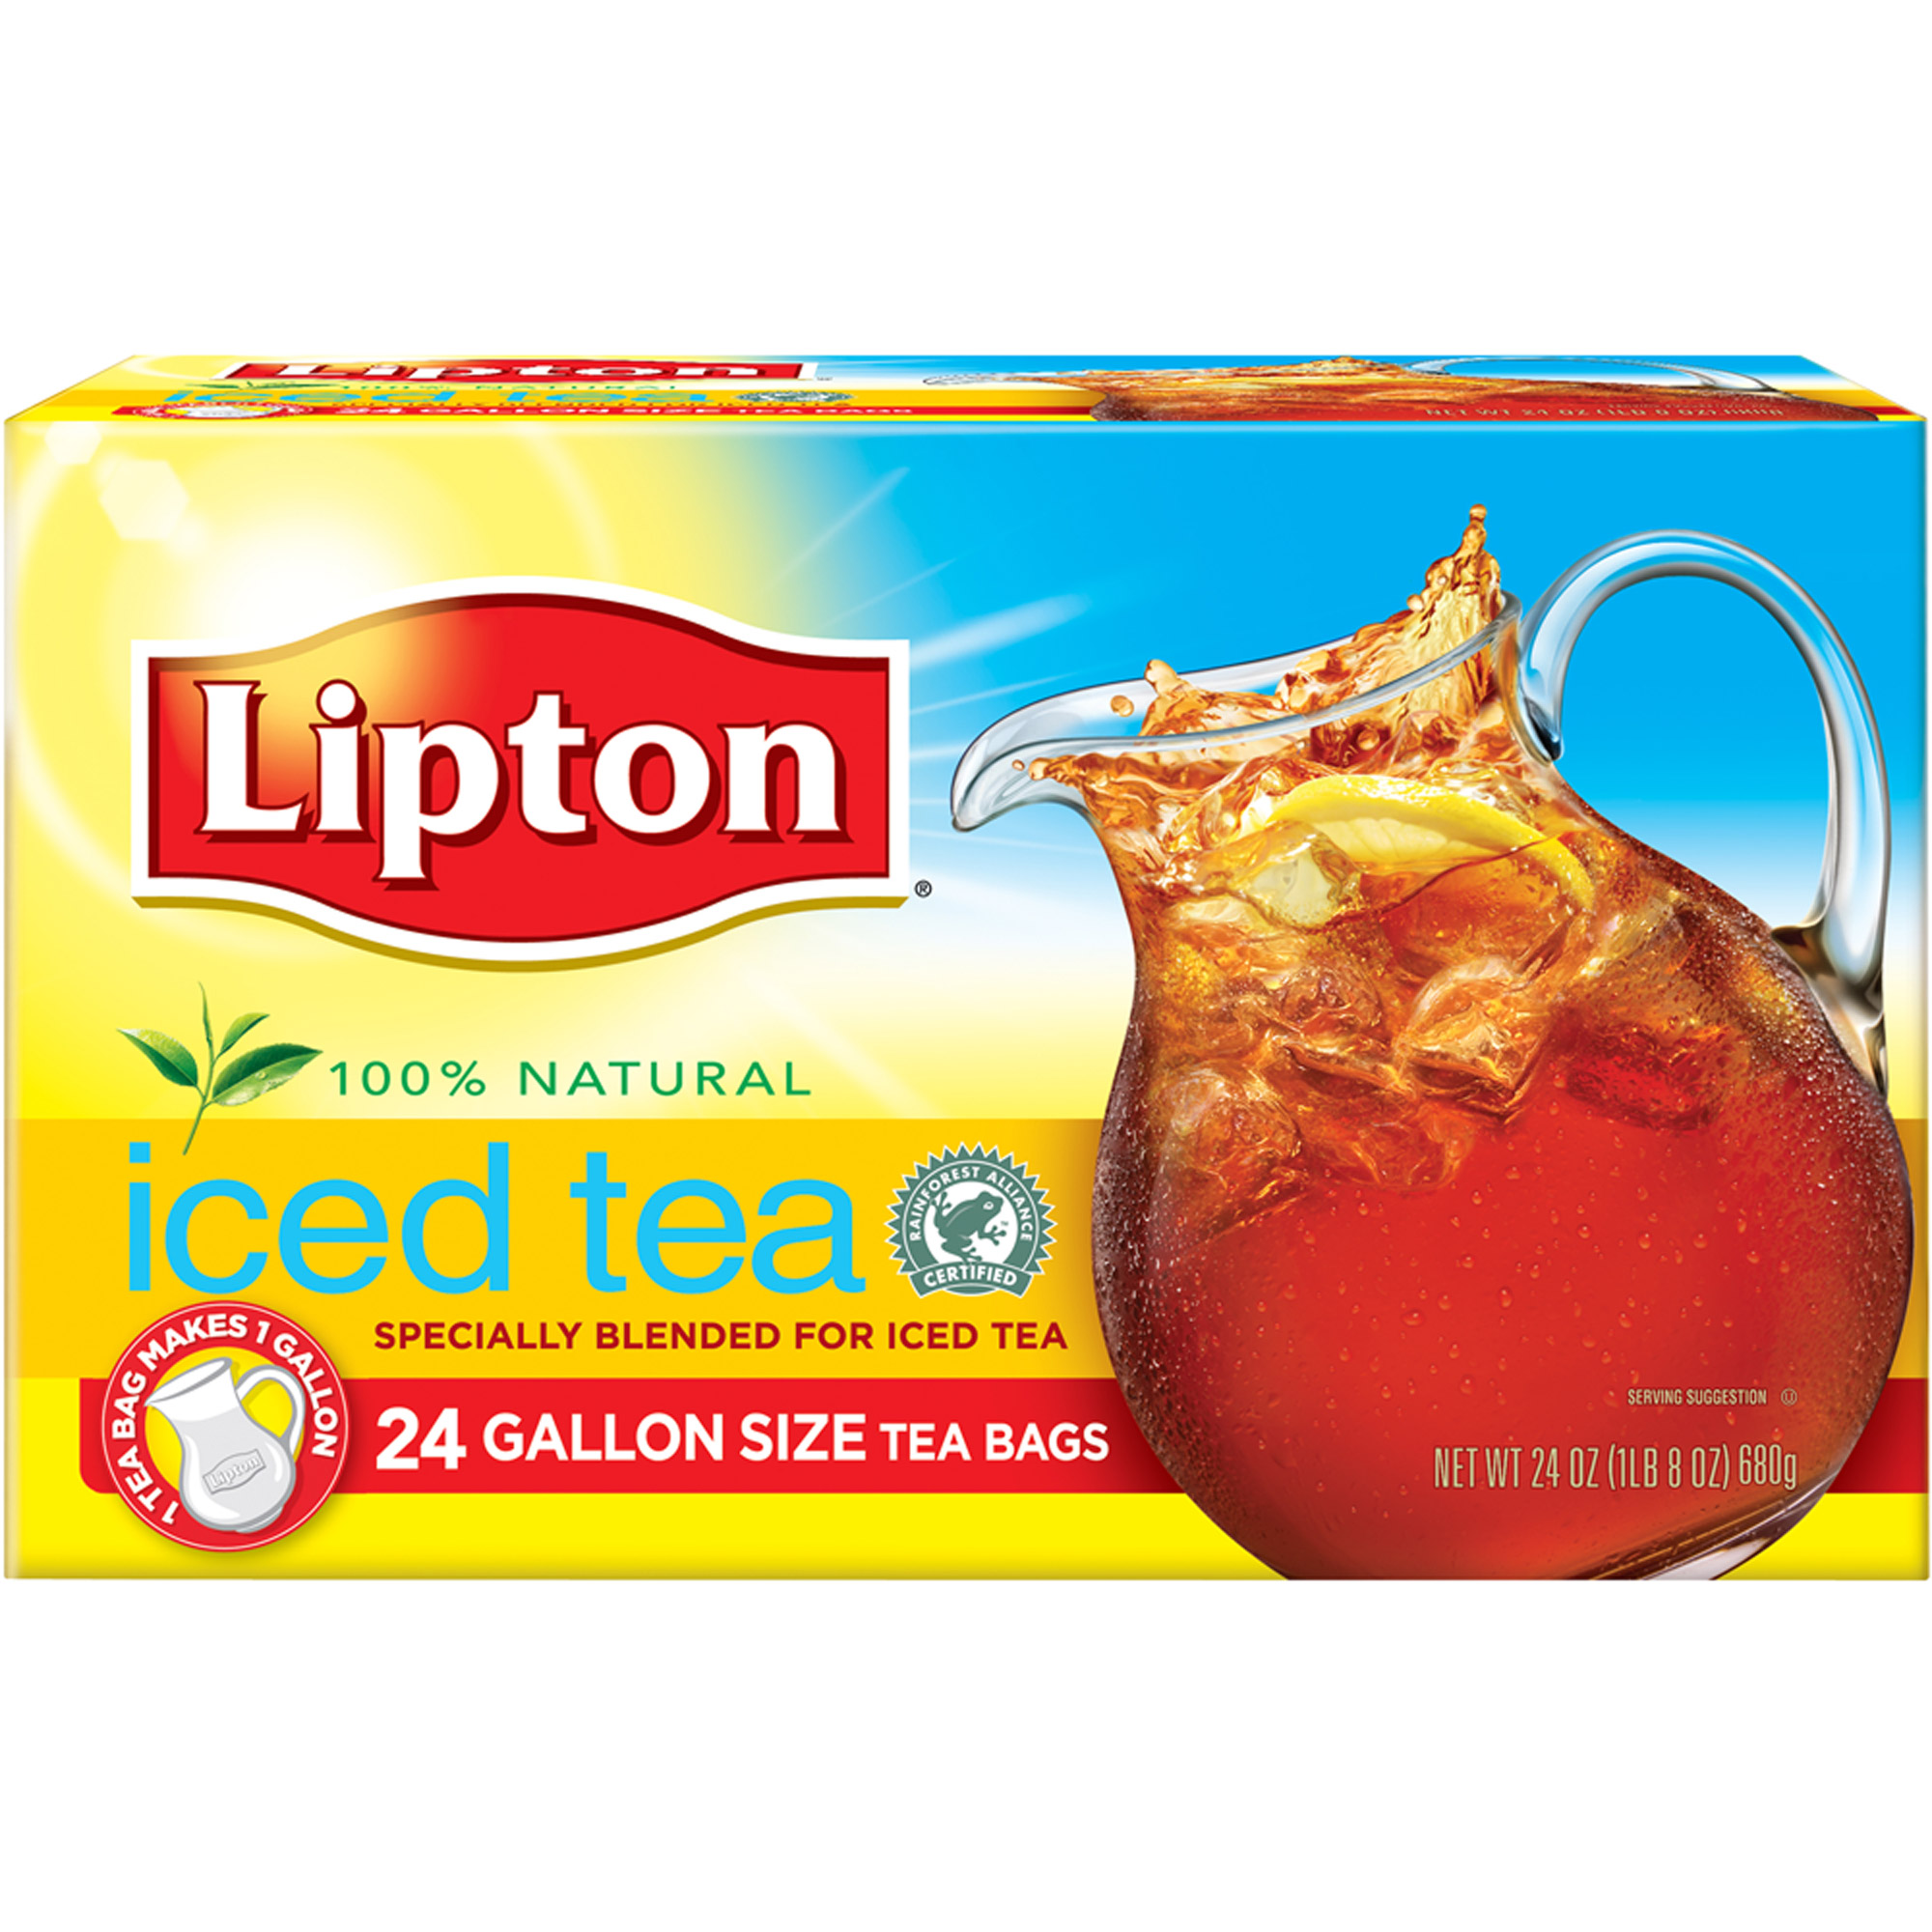 Lipton Gallon Size Black Iced Tea Bags, 24 ct